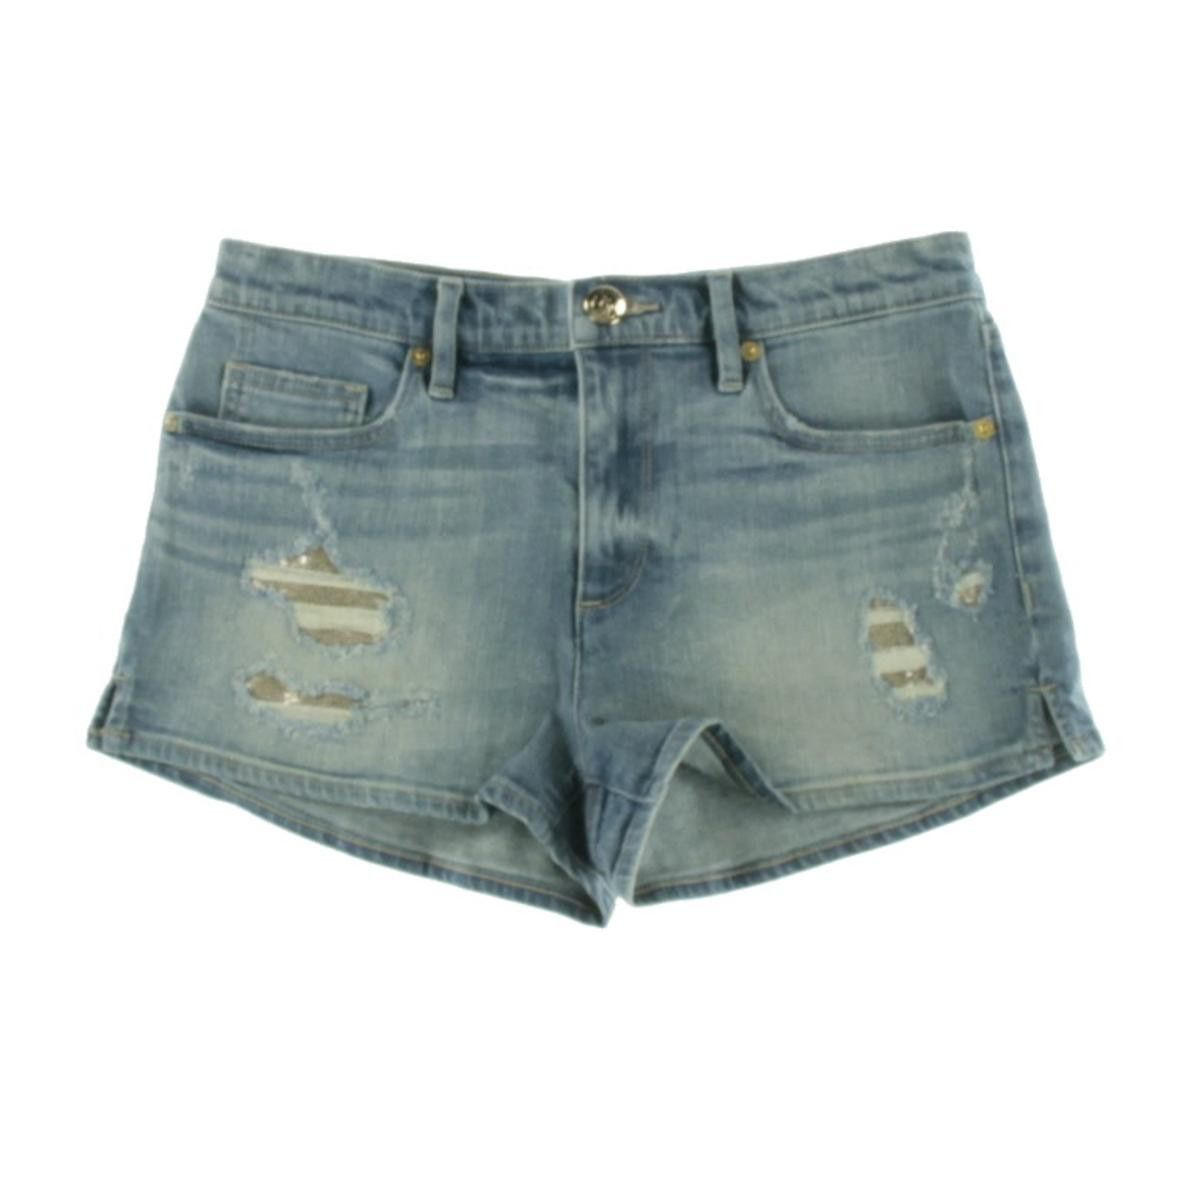 Juicy Couture Black Label Womens Clyde Wash Sequin Patched Denim Shorts